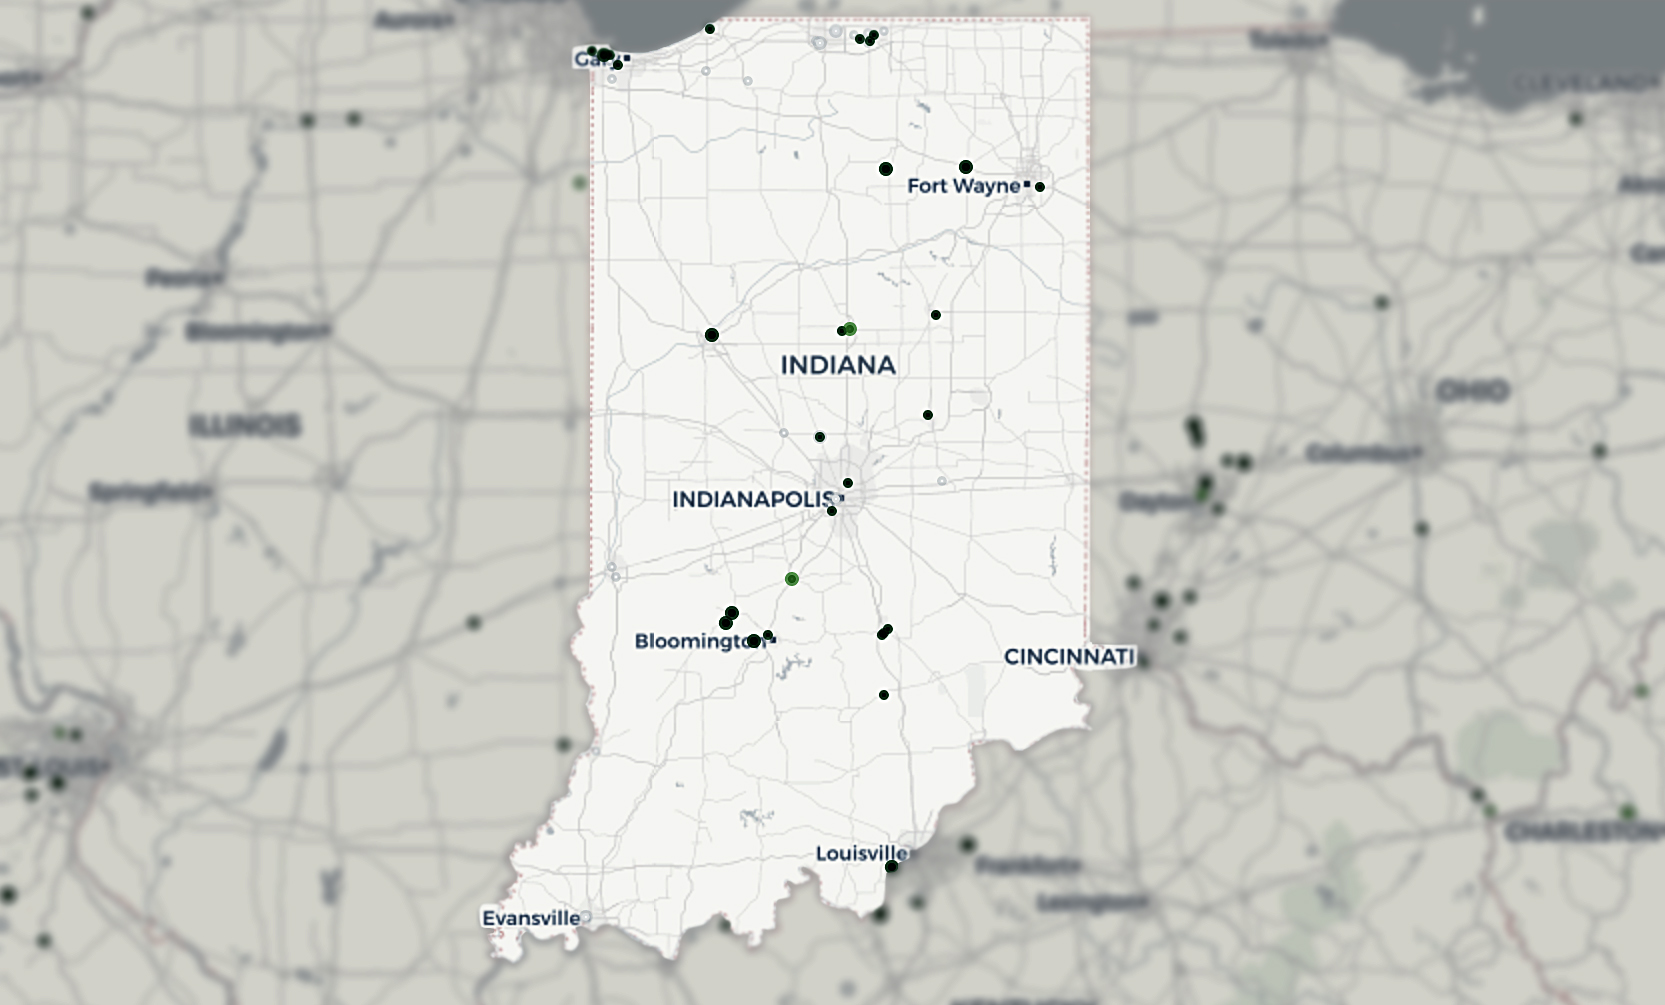 Indiana Superfund sites that could be affected by climate change impacts.